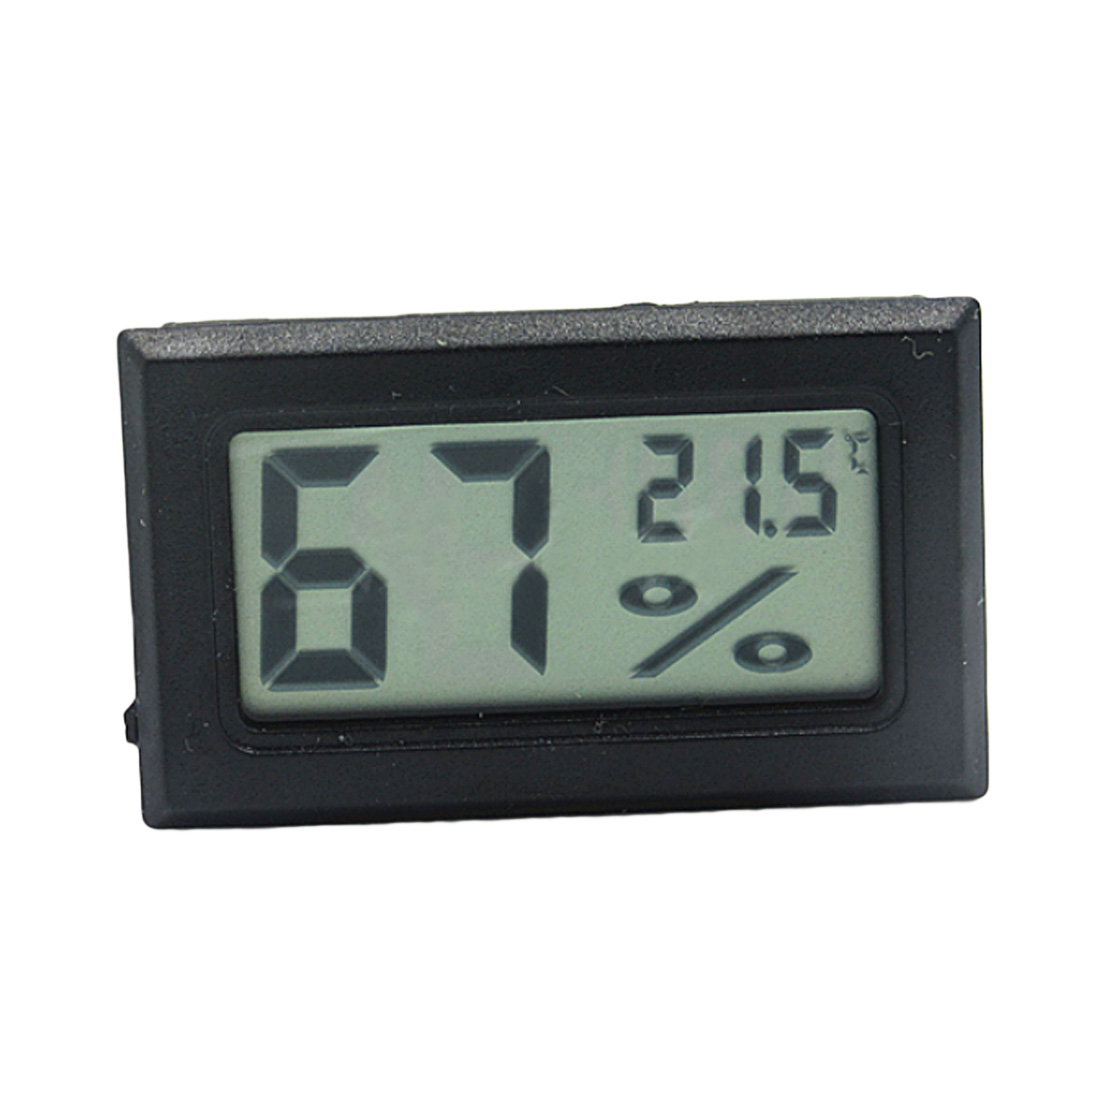 Humidity Meter Gauge Instruments 1 PC Mini LCD Digital Thermometer Hygrometer Temperature Temperature Sensor Indoor Convenient